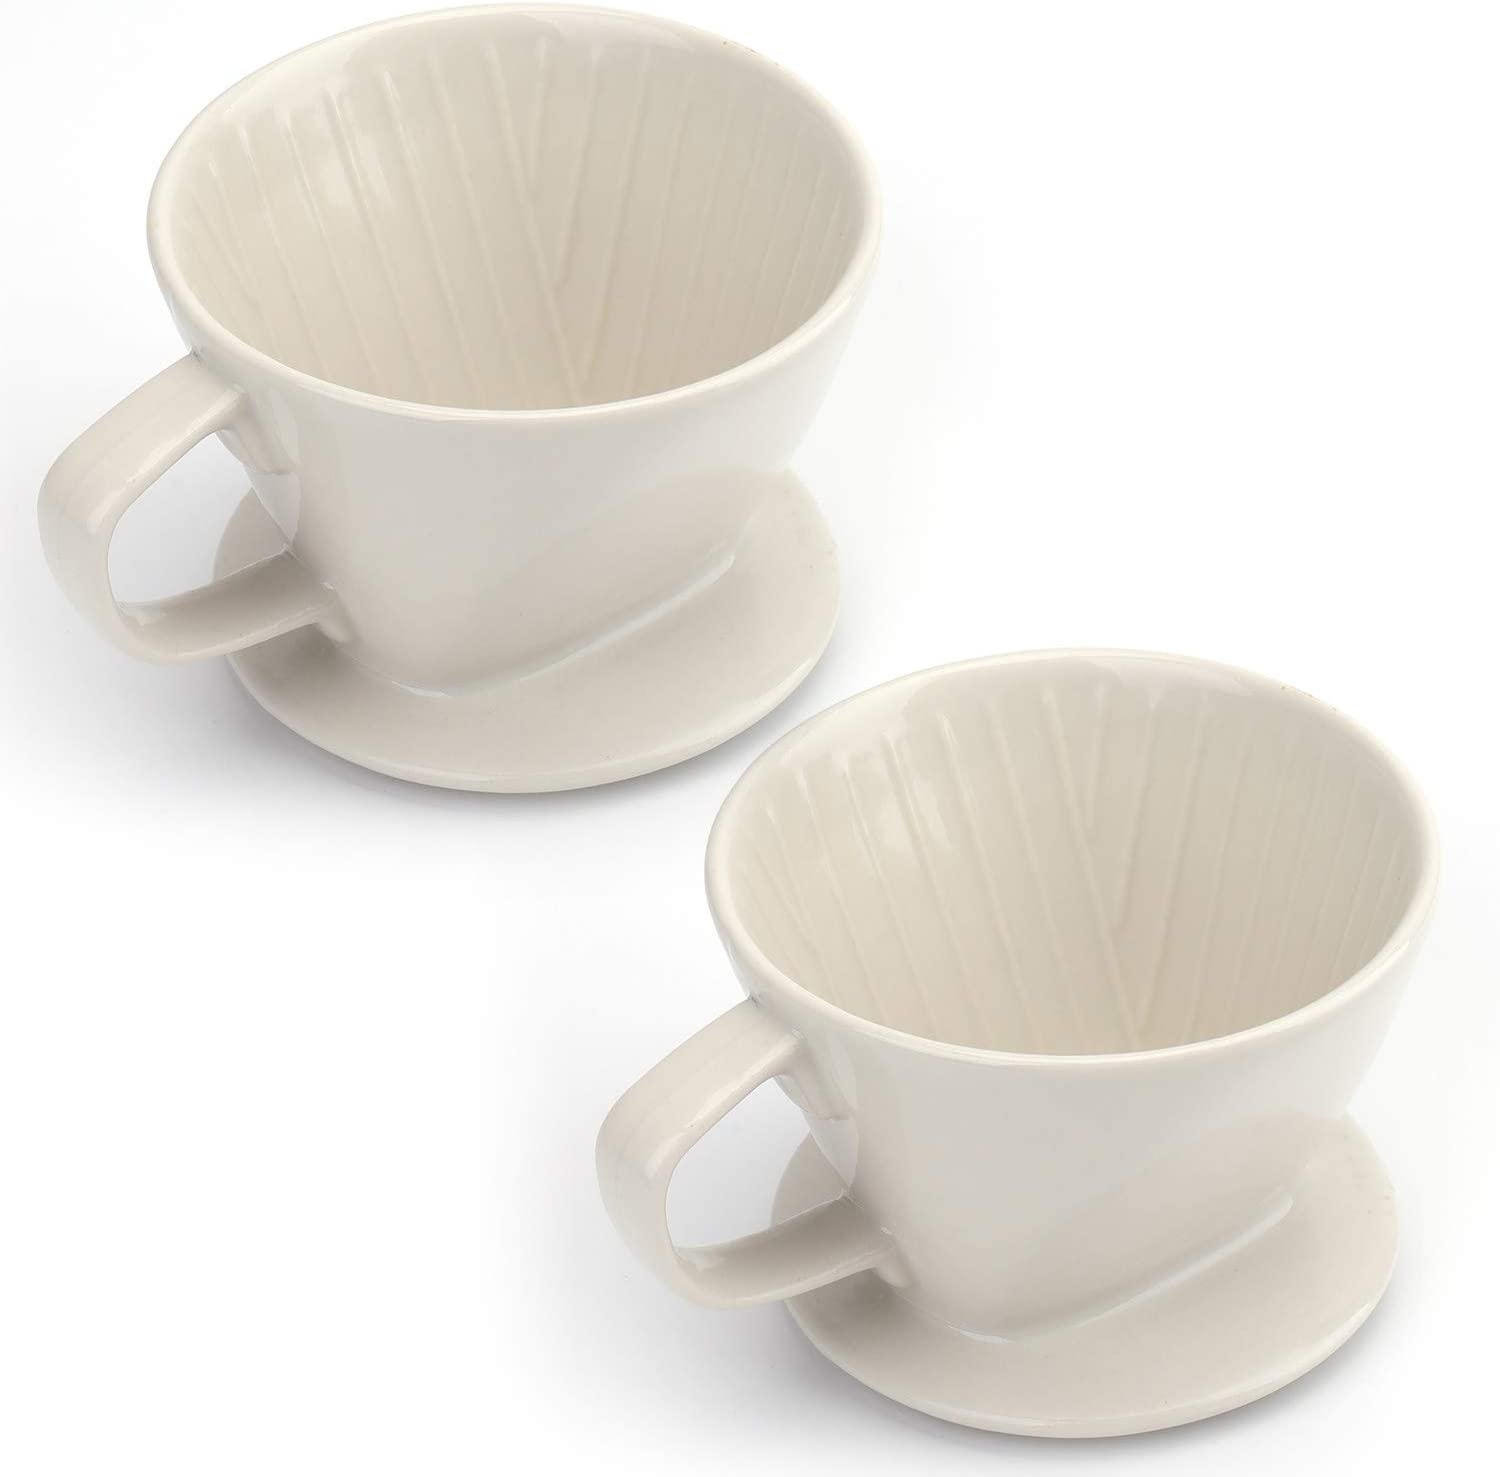 Yesland 2 Pcs Coffee Pour Over, 10 Oz Ceramic Coffee Filter Cup with 3 Holes, Reusable Brewing Coffee Dripper for Home & Office